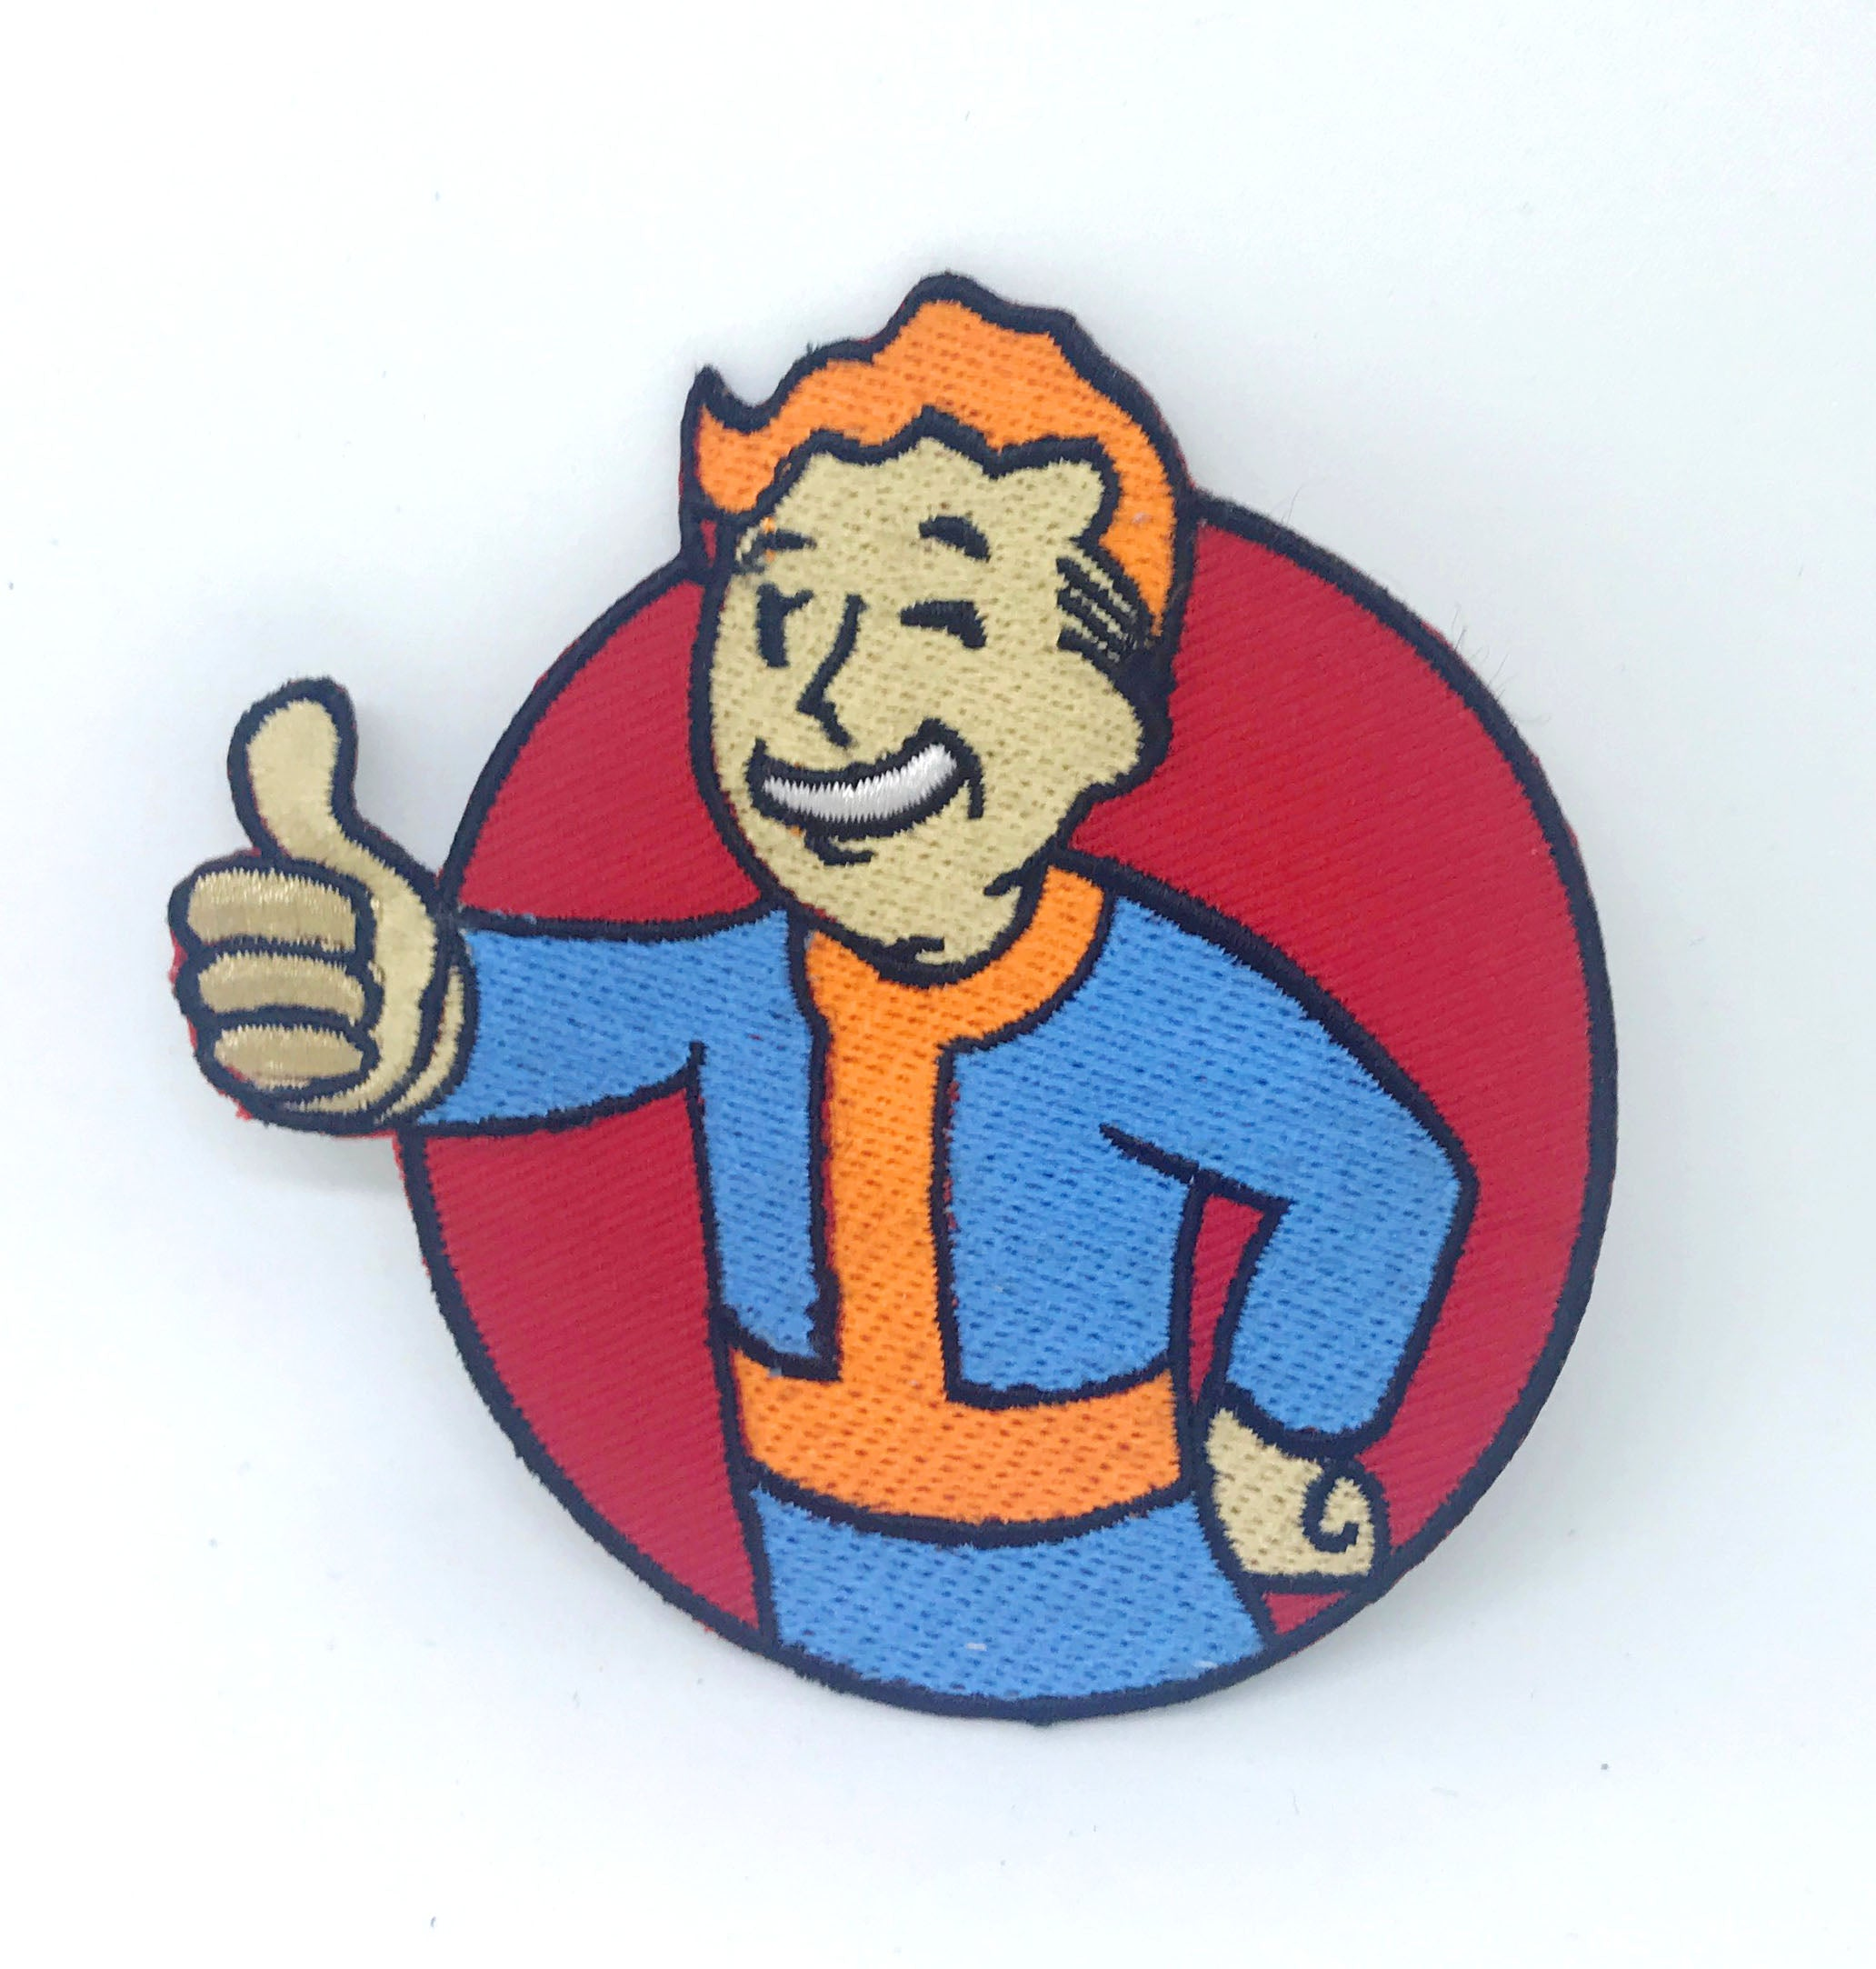 Vault boy 'Fallout' game pip boy thumb punk Iron on Sew on Embroidered patch